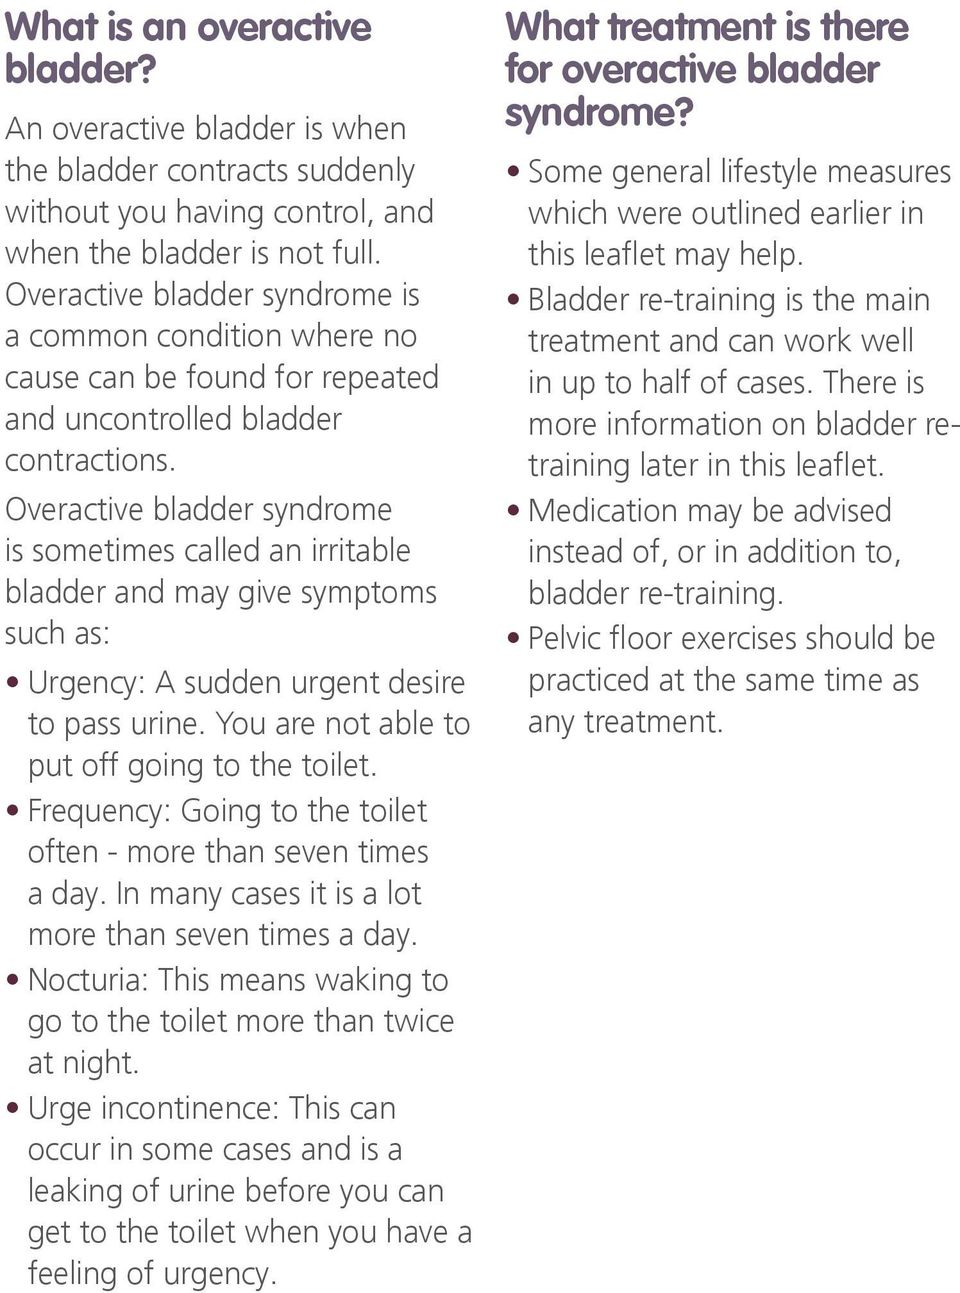 Overactive bladder syndrome is sometimes called an irritable bladder and may give symptoms such as: Urgency: A sudden urgent desire to pass urine. You are not able to put off going to the toilet.